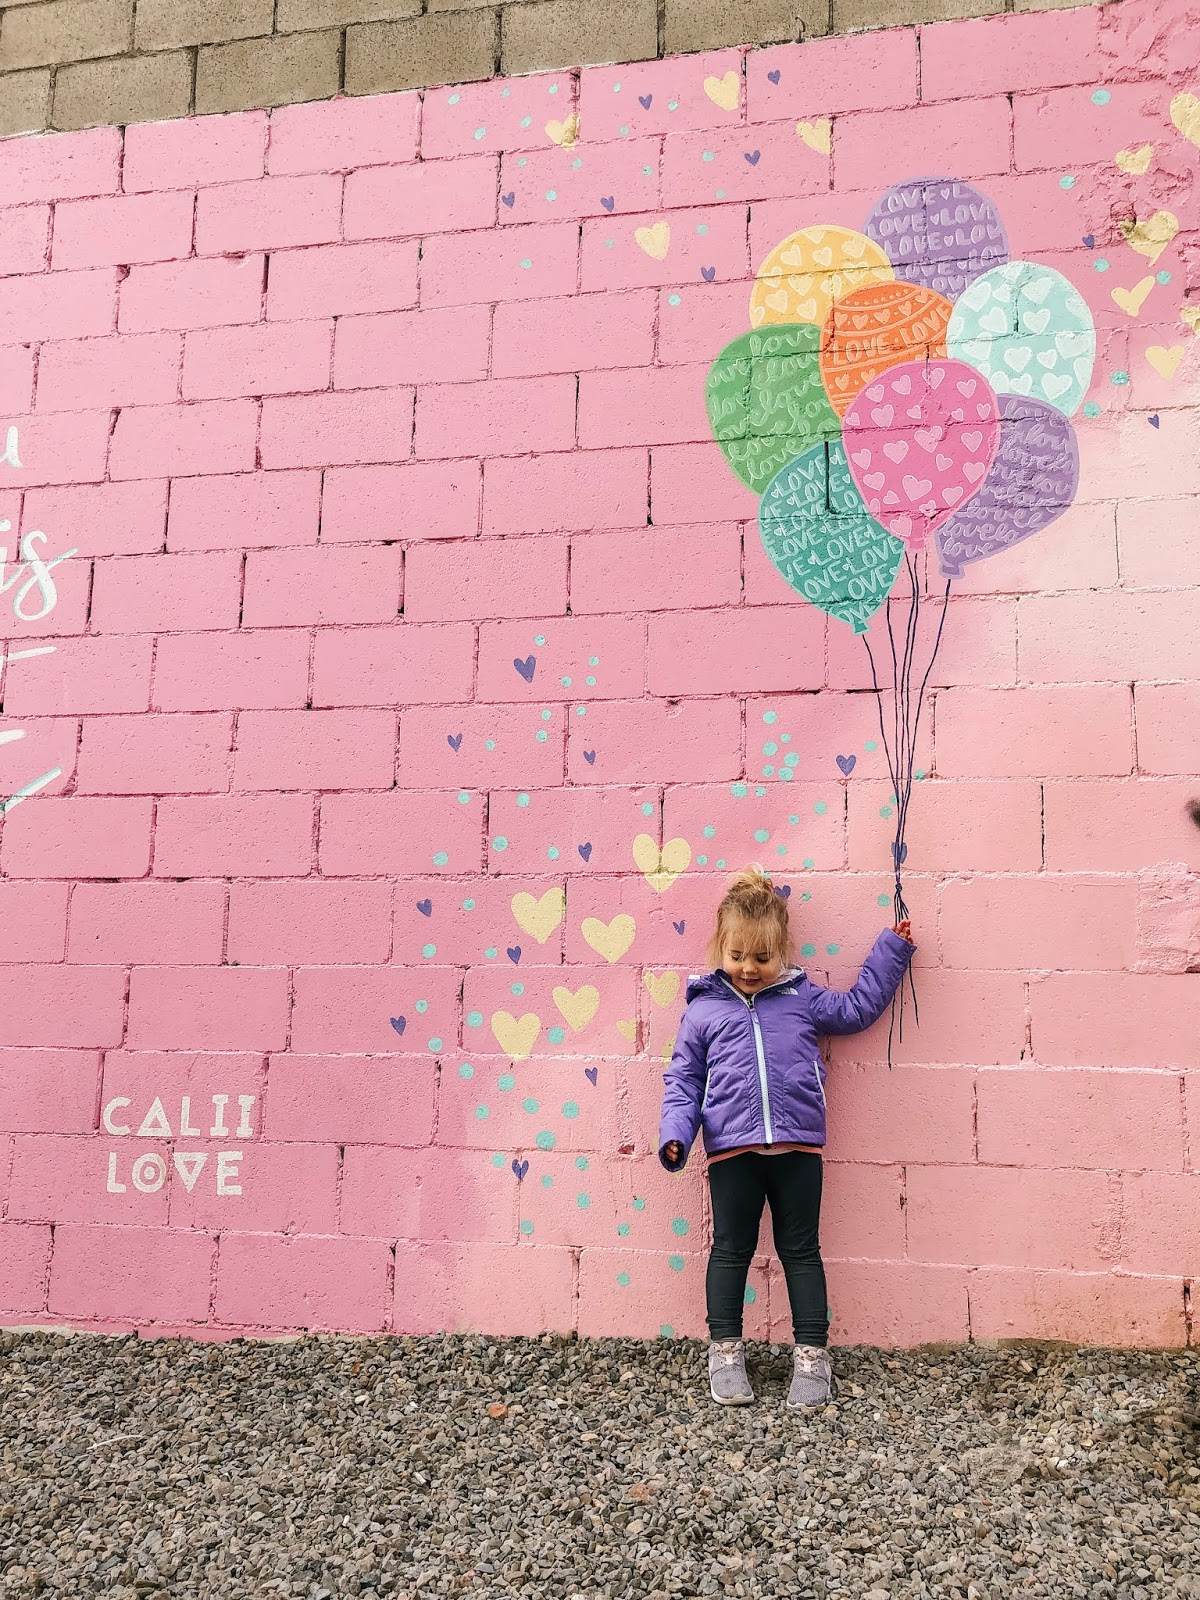 Calii Love balloon mural